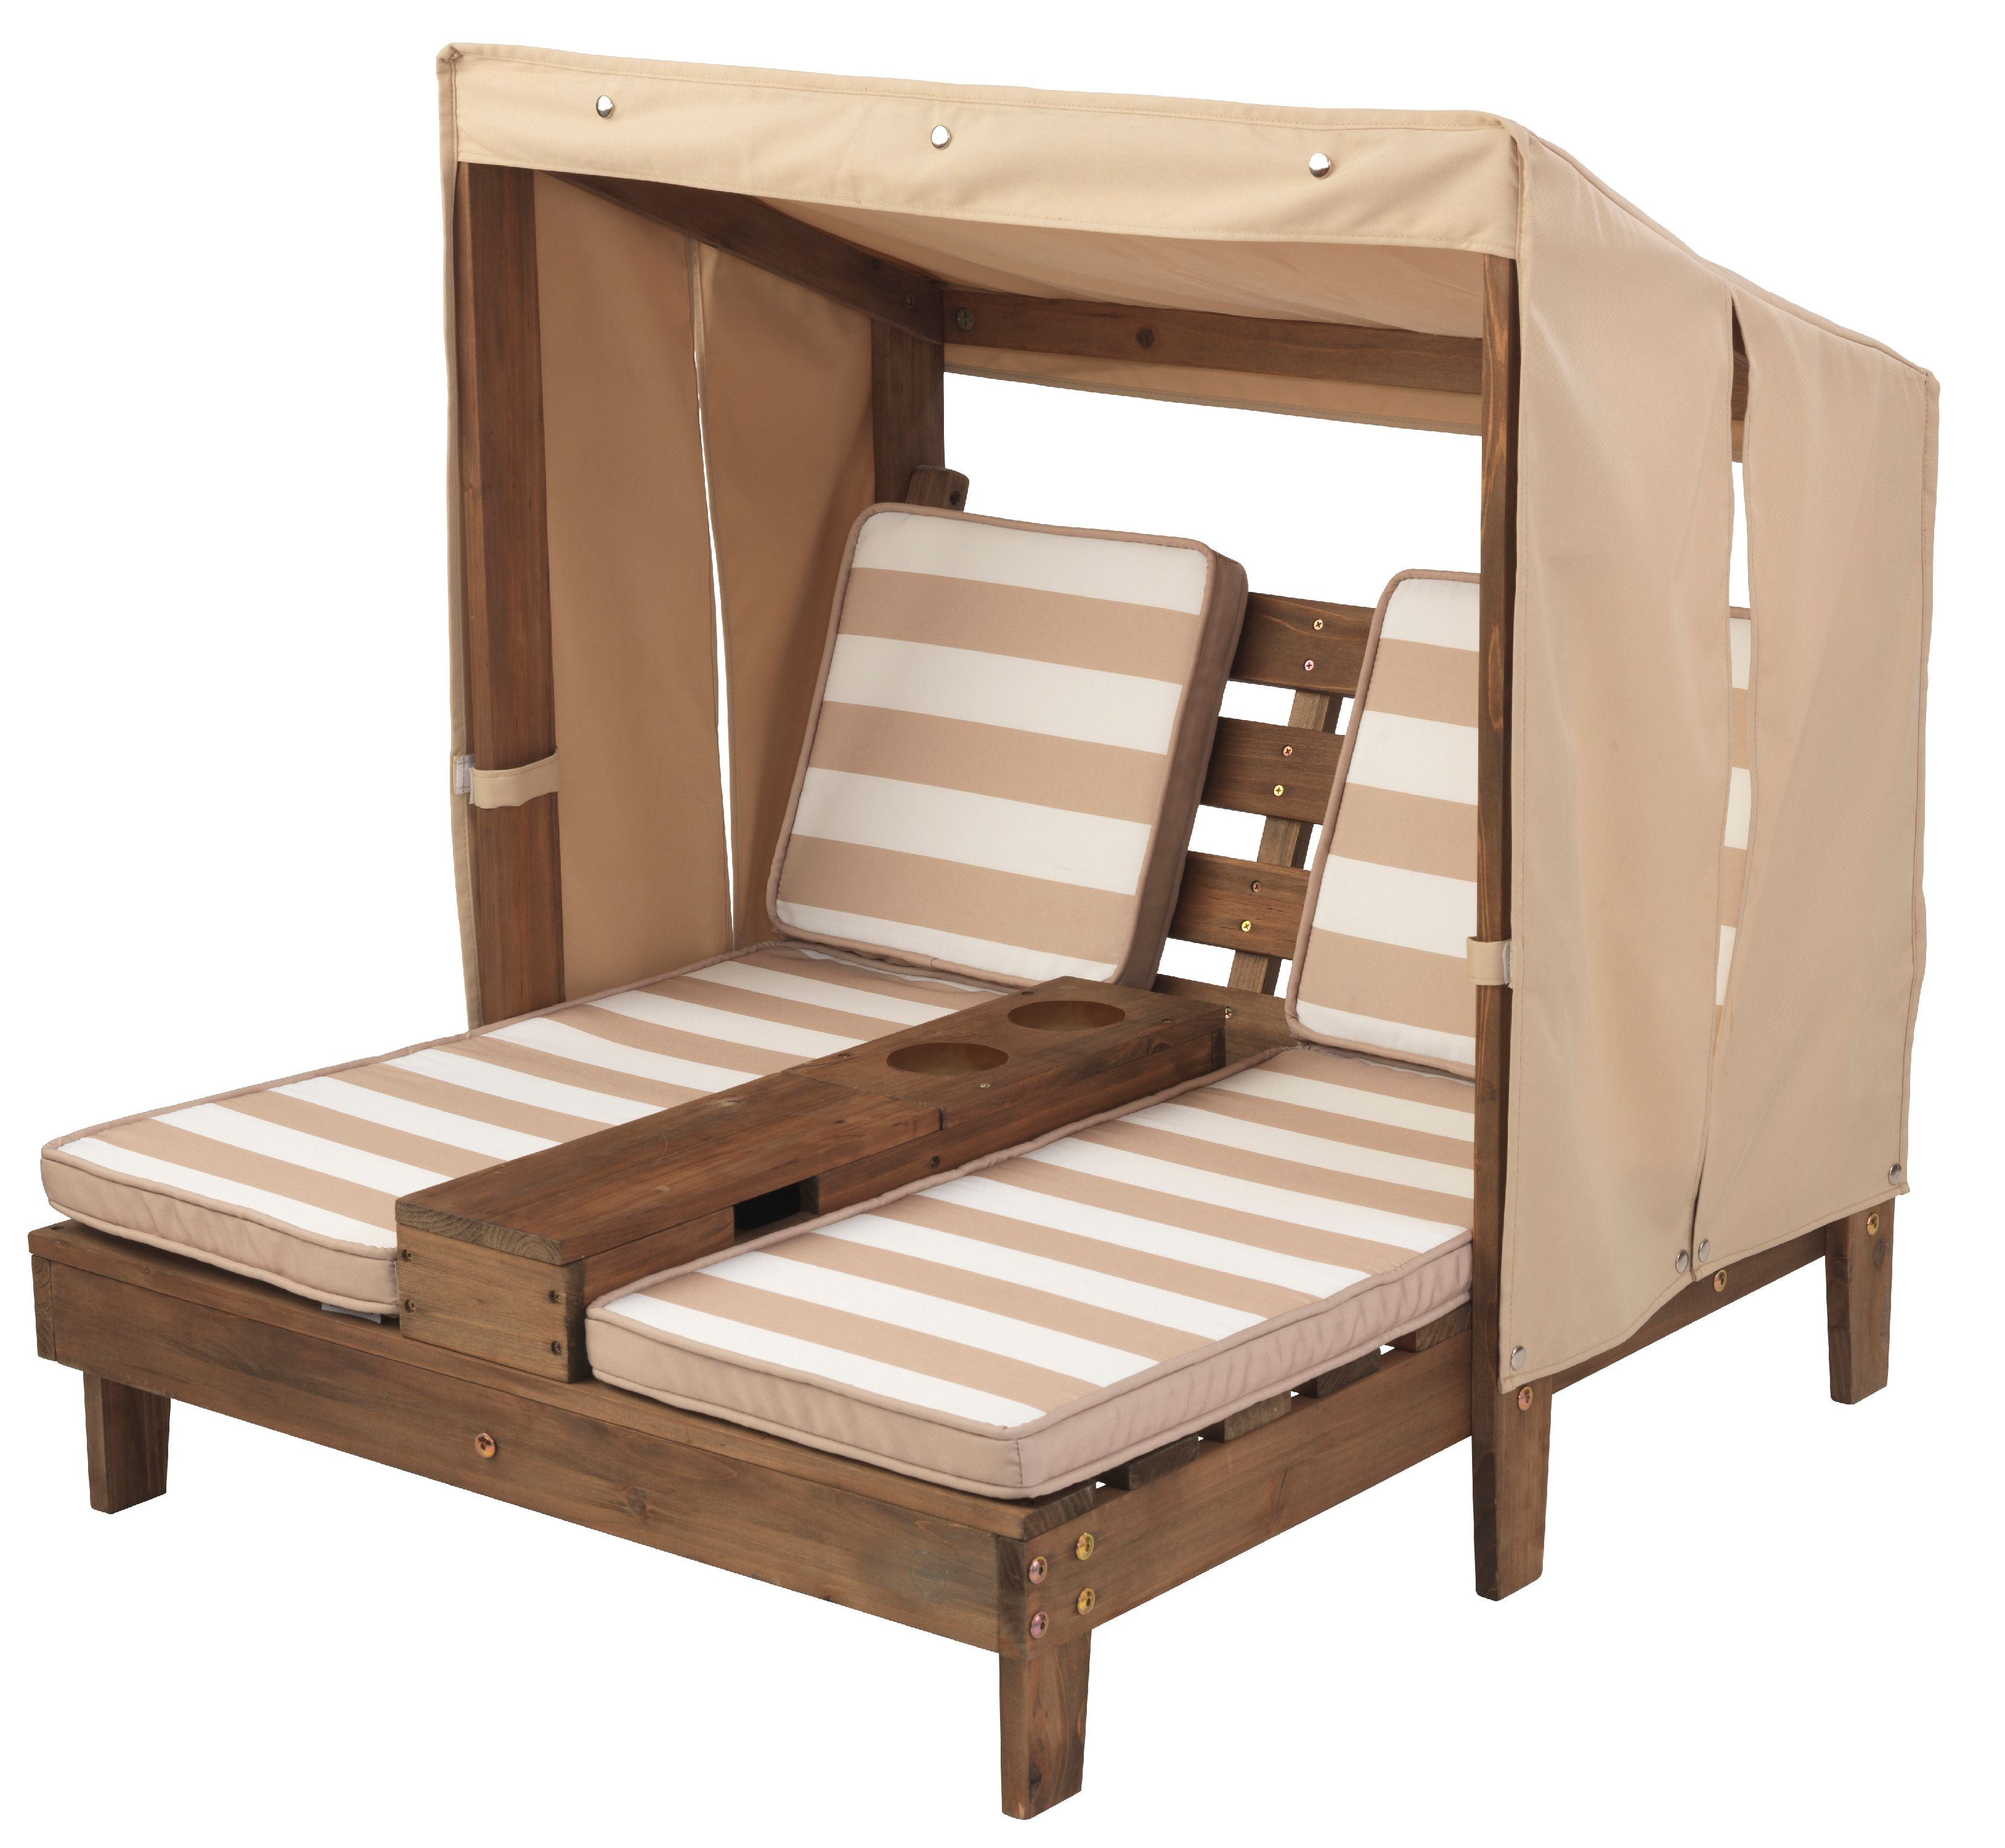 - KidKraft Double Chaise Lounge With Cupholders - Espresso & Oatmeal